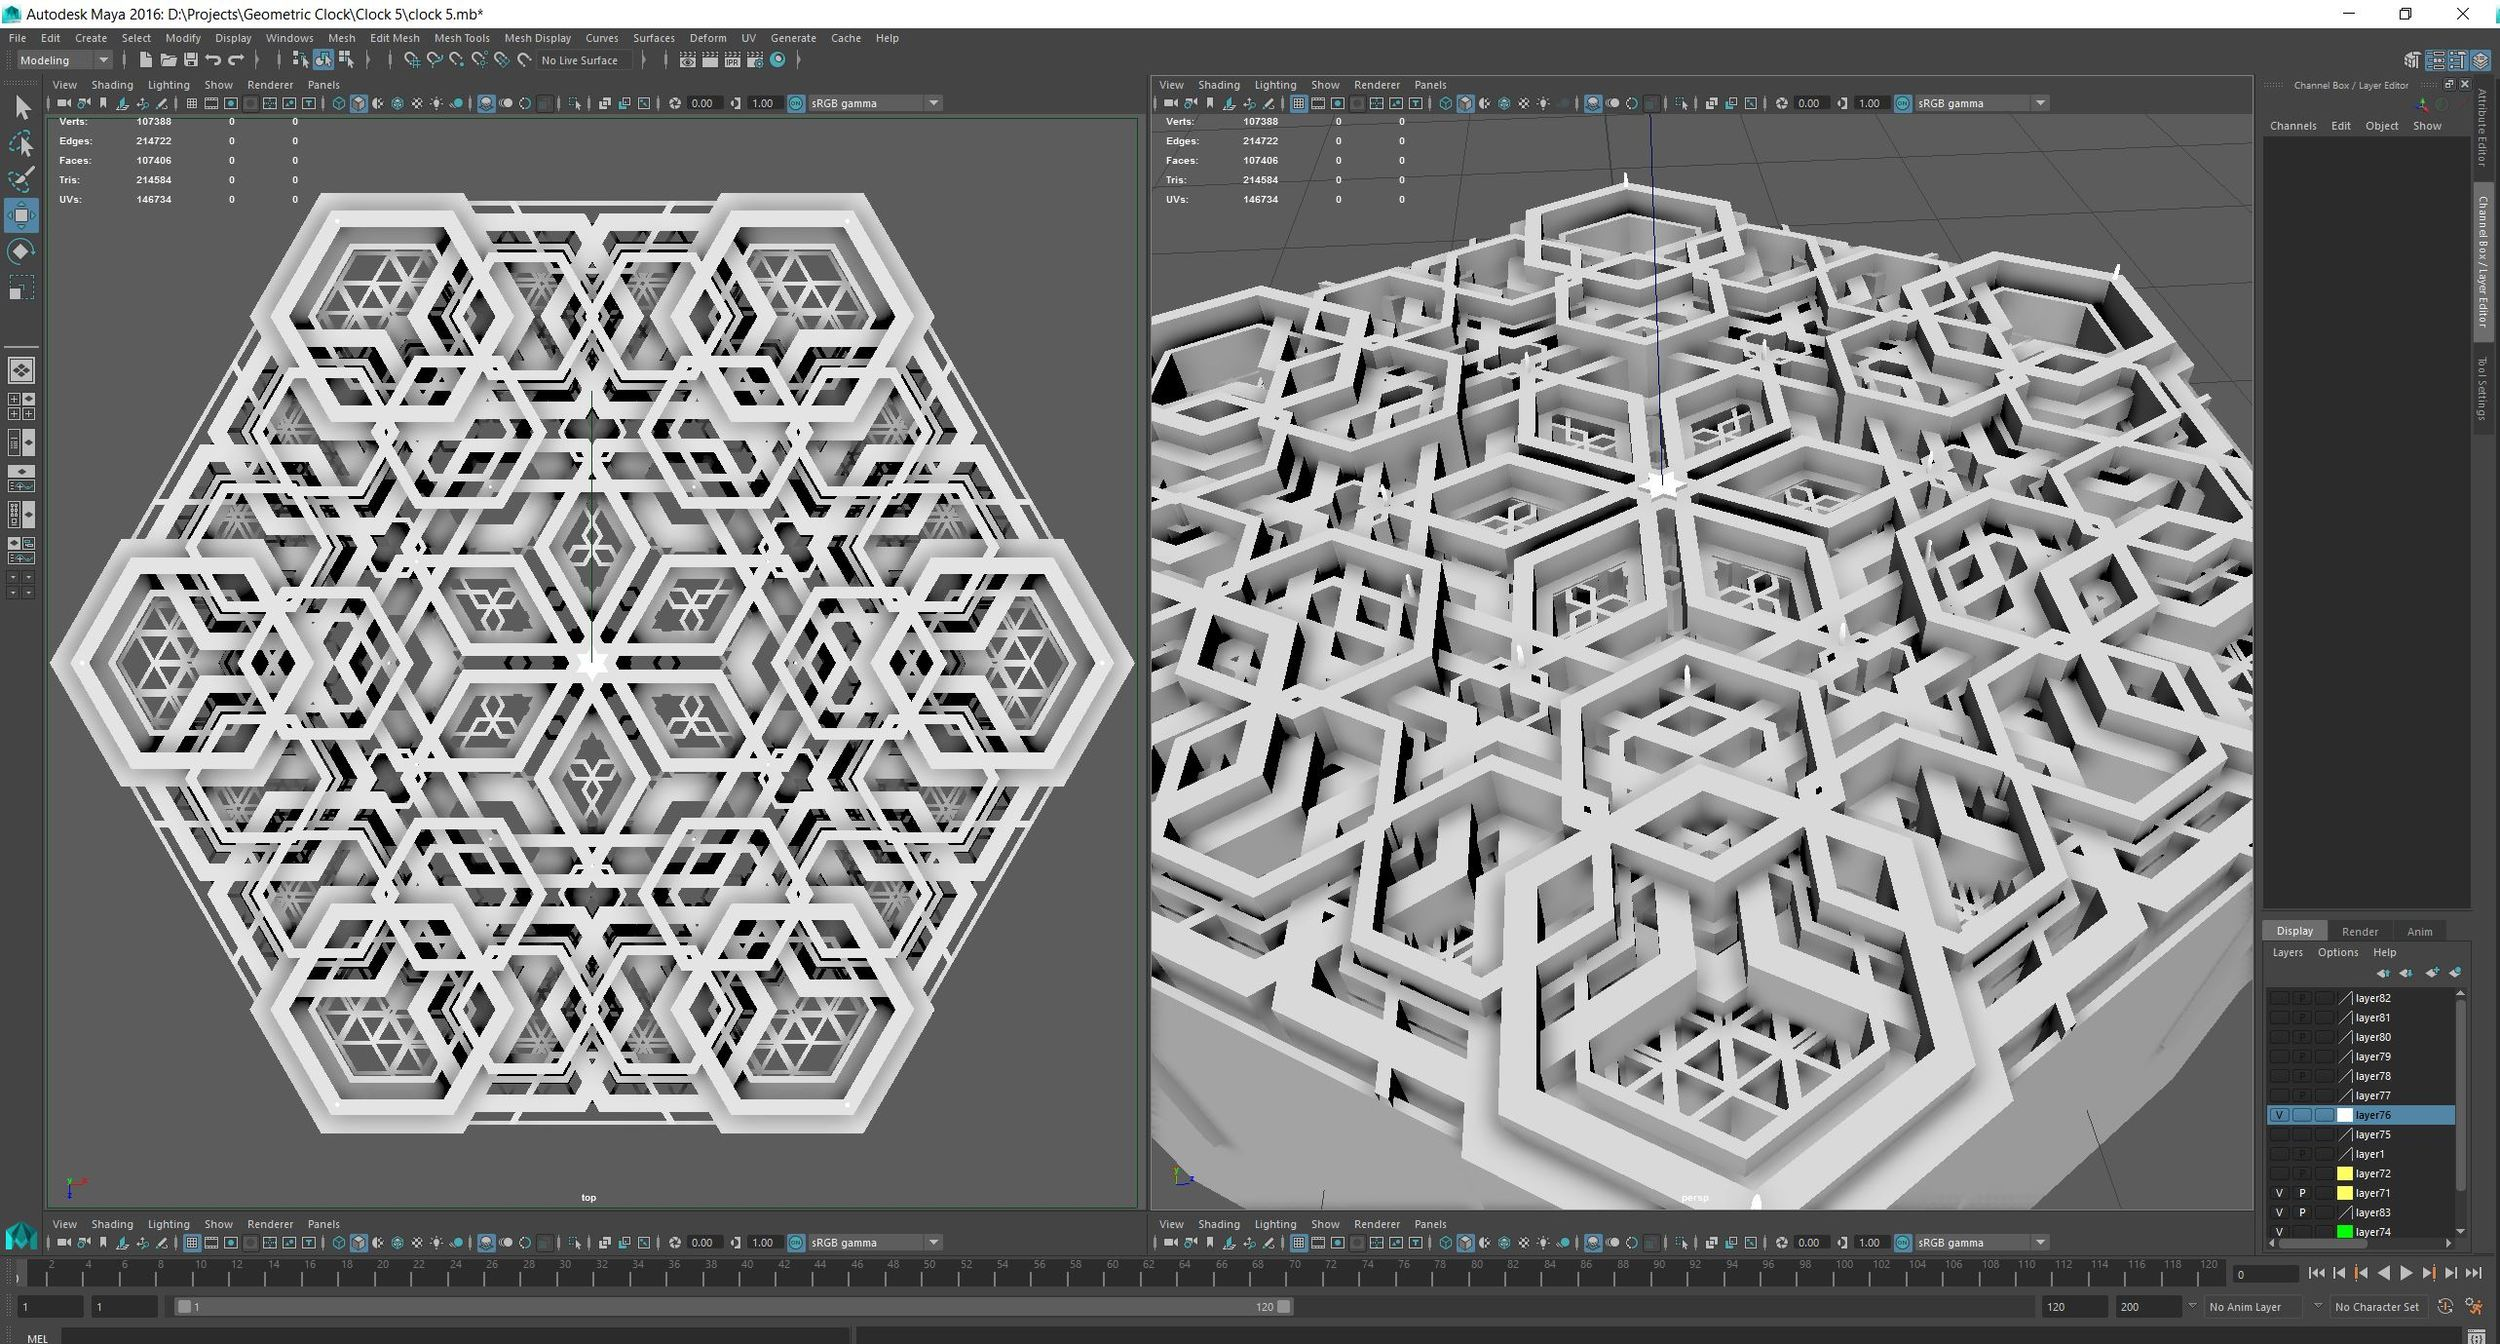 Geometrically harmonious modular pieces are designed in 3d modelling software